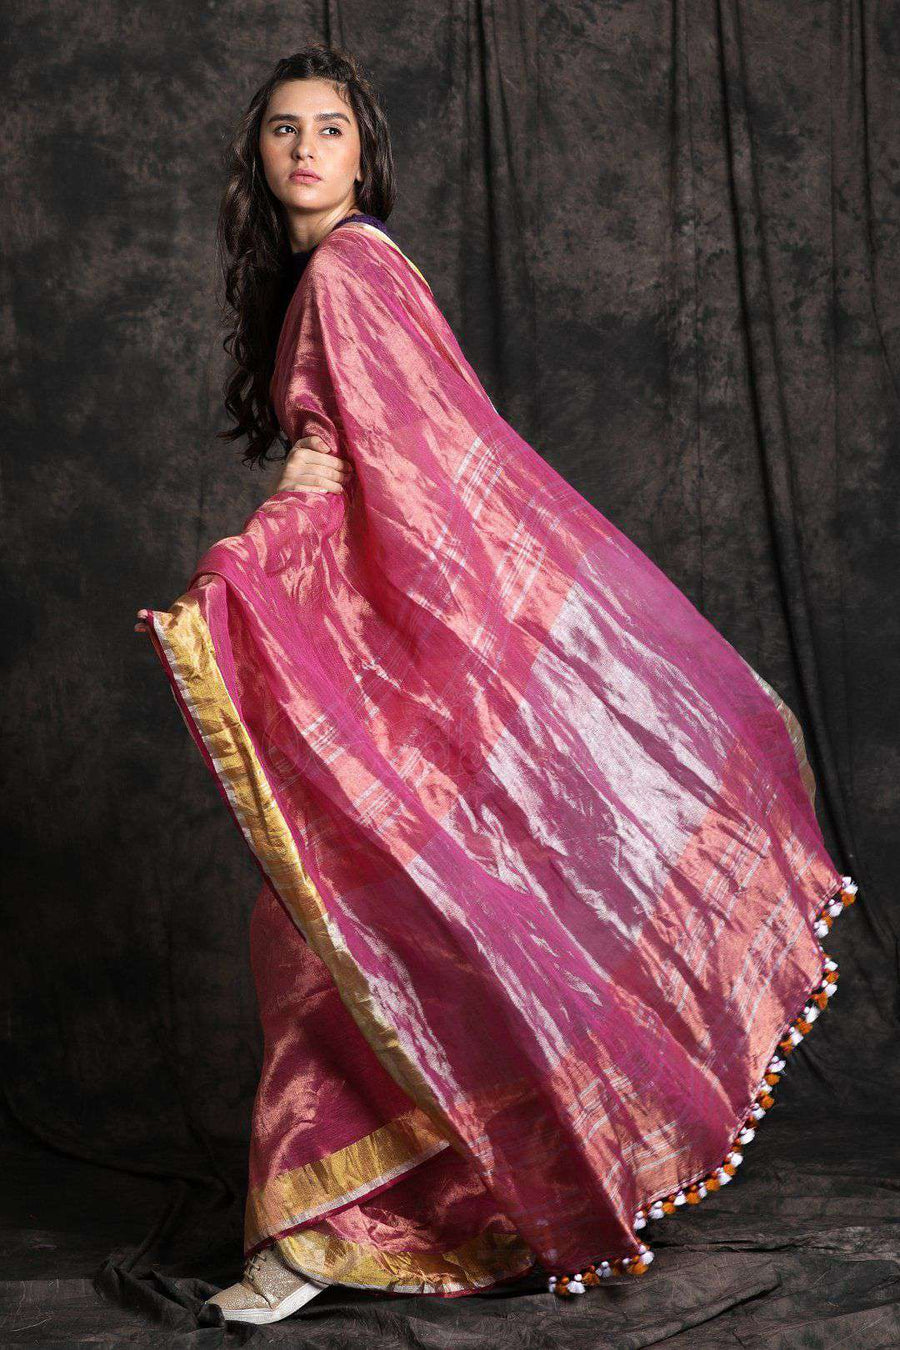 Bright Tone Linen Zari Saree Earthen Collection Roopkatha - A Story of Art